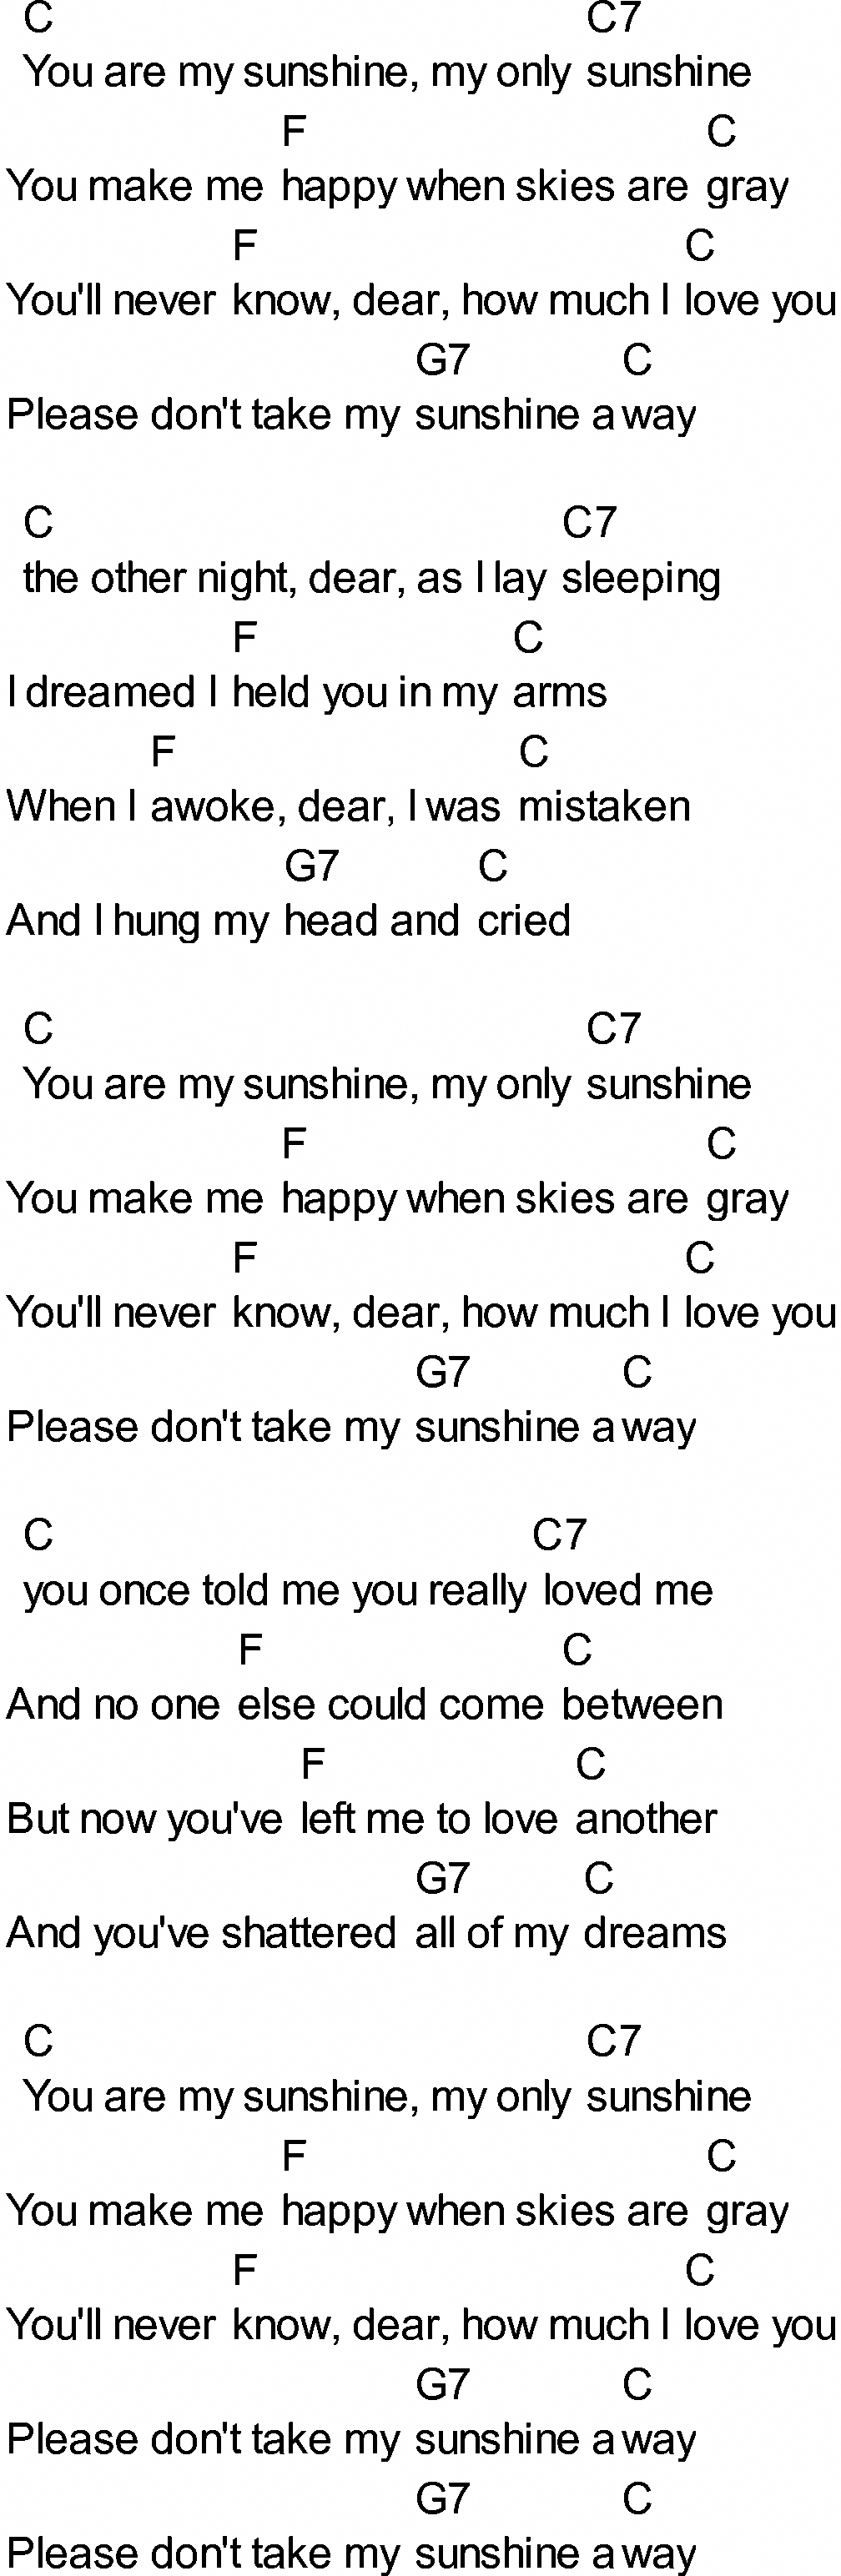 Bluegrass songs with chords   You Are My Sunshine Guitar ...